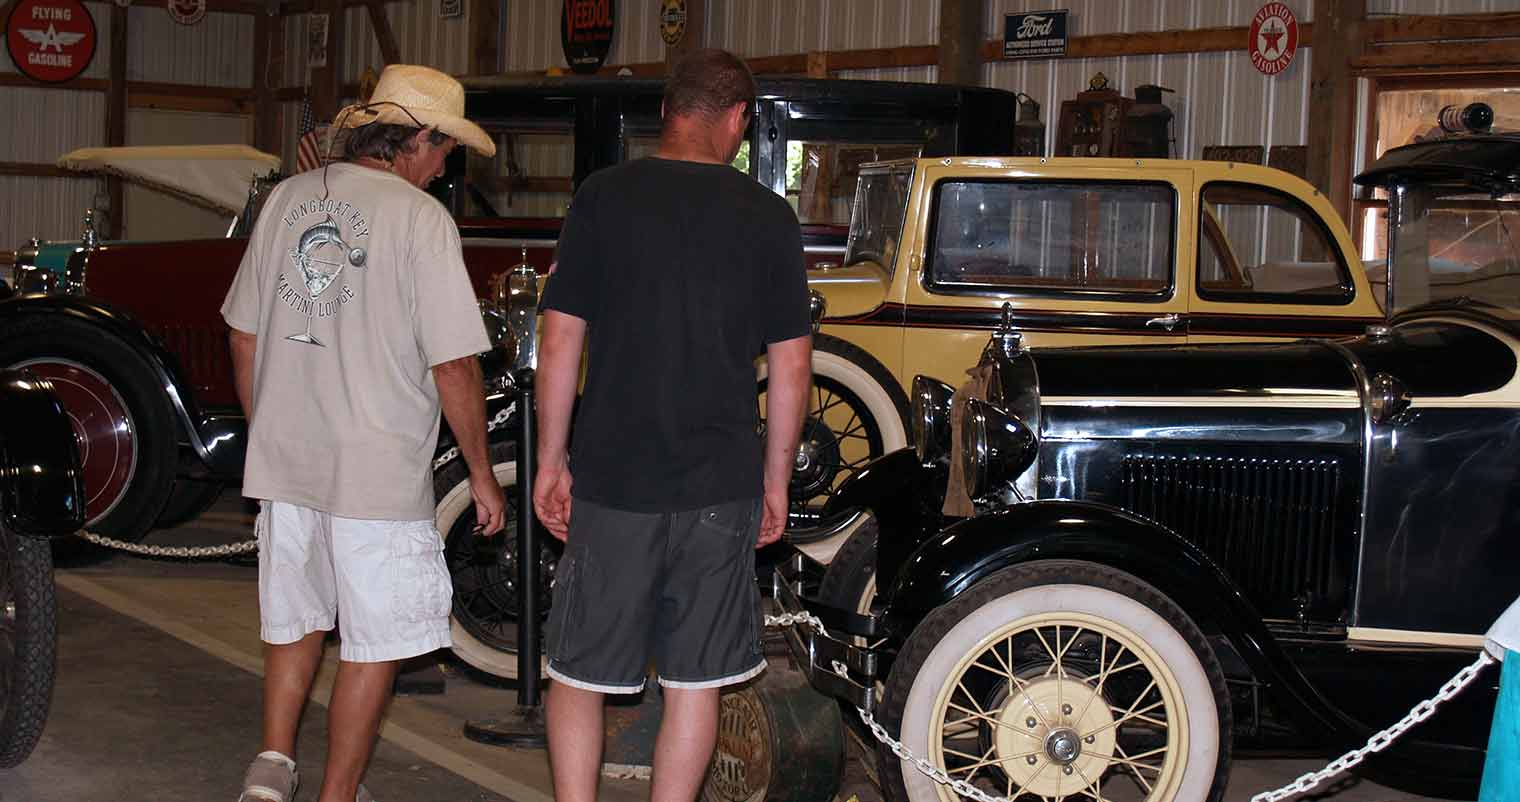 Perry's Cave Family Fun Center - Put-in-Bay - Antique Car Museum